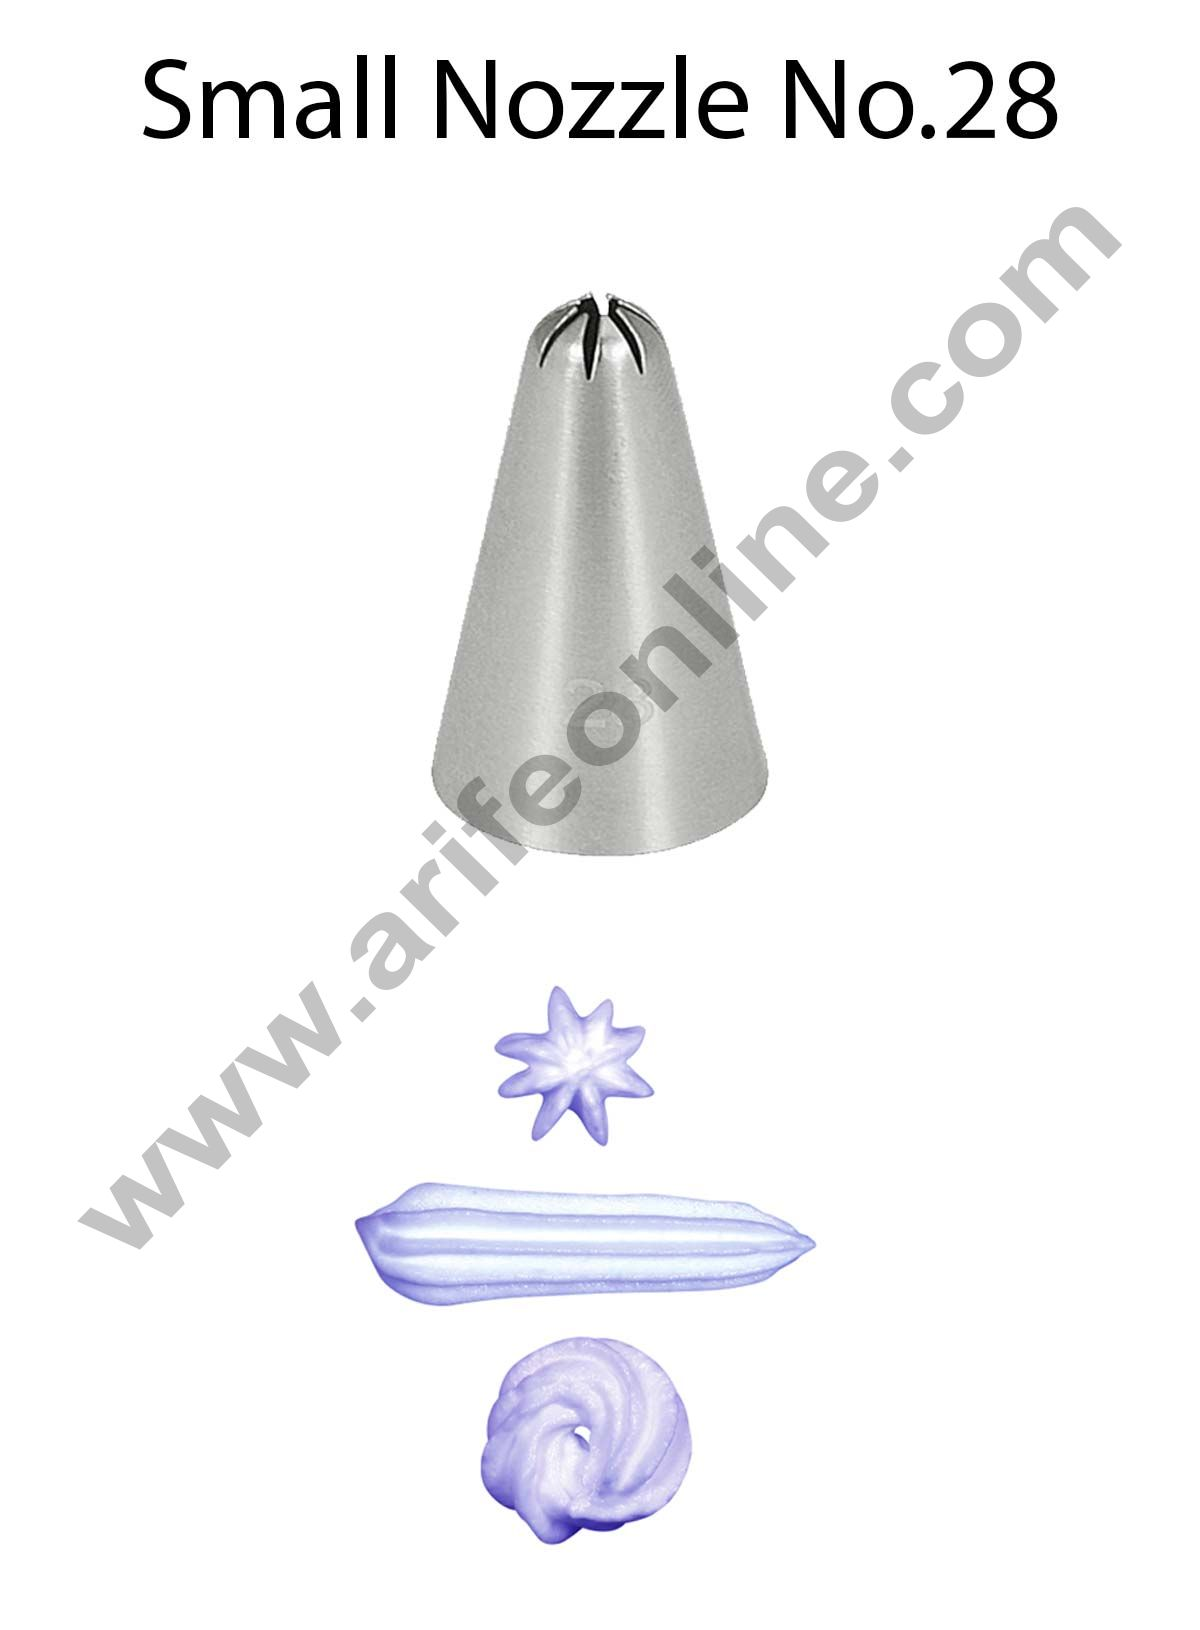 Cake Decor Small Nozzle - No. 28 Closed Star Piping Nozzle